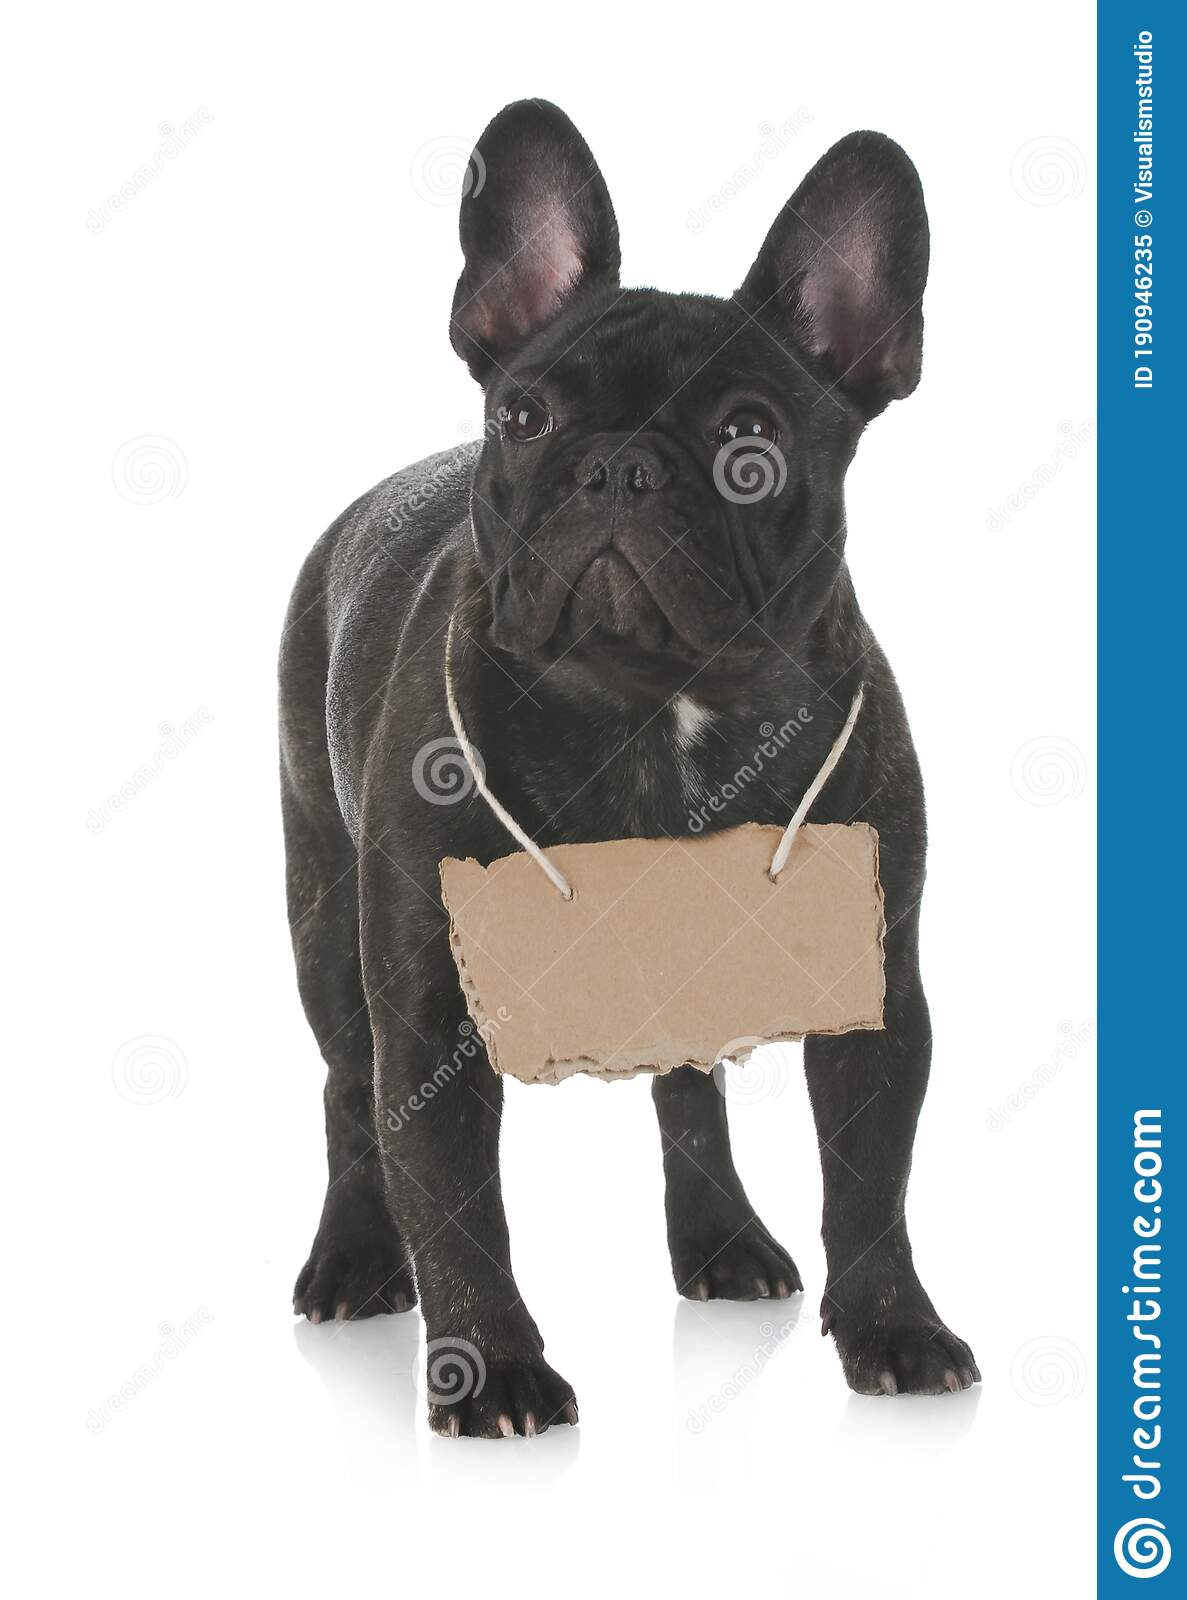 Black Dog Puppies Funny Smiling Puppy Dog A Paw And Cute Puppy On White Stock Image Image Of Design Funny 190946235